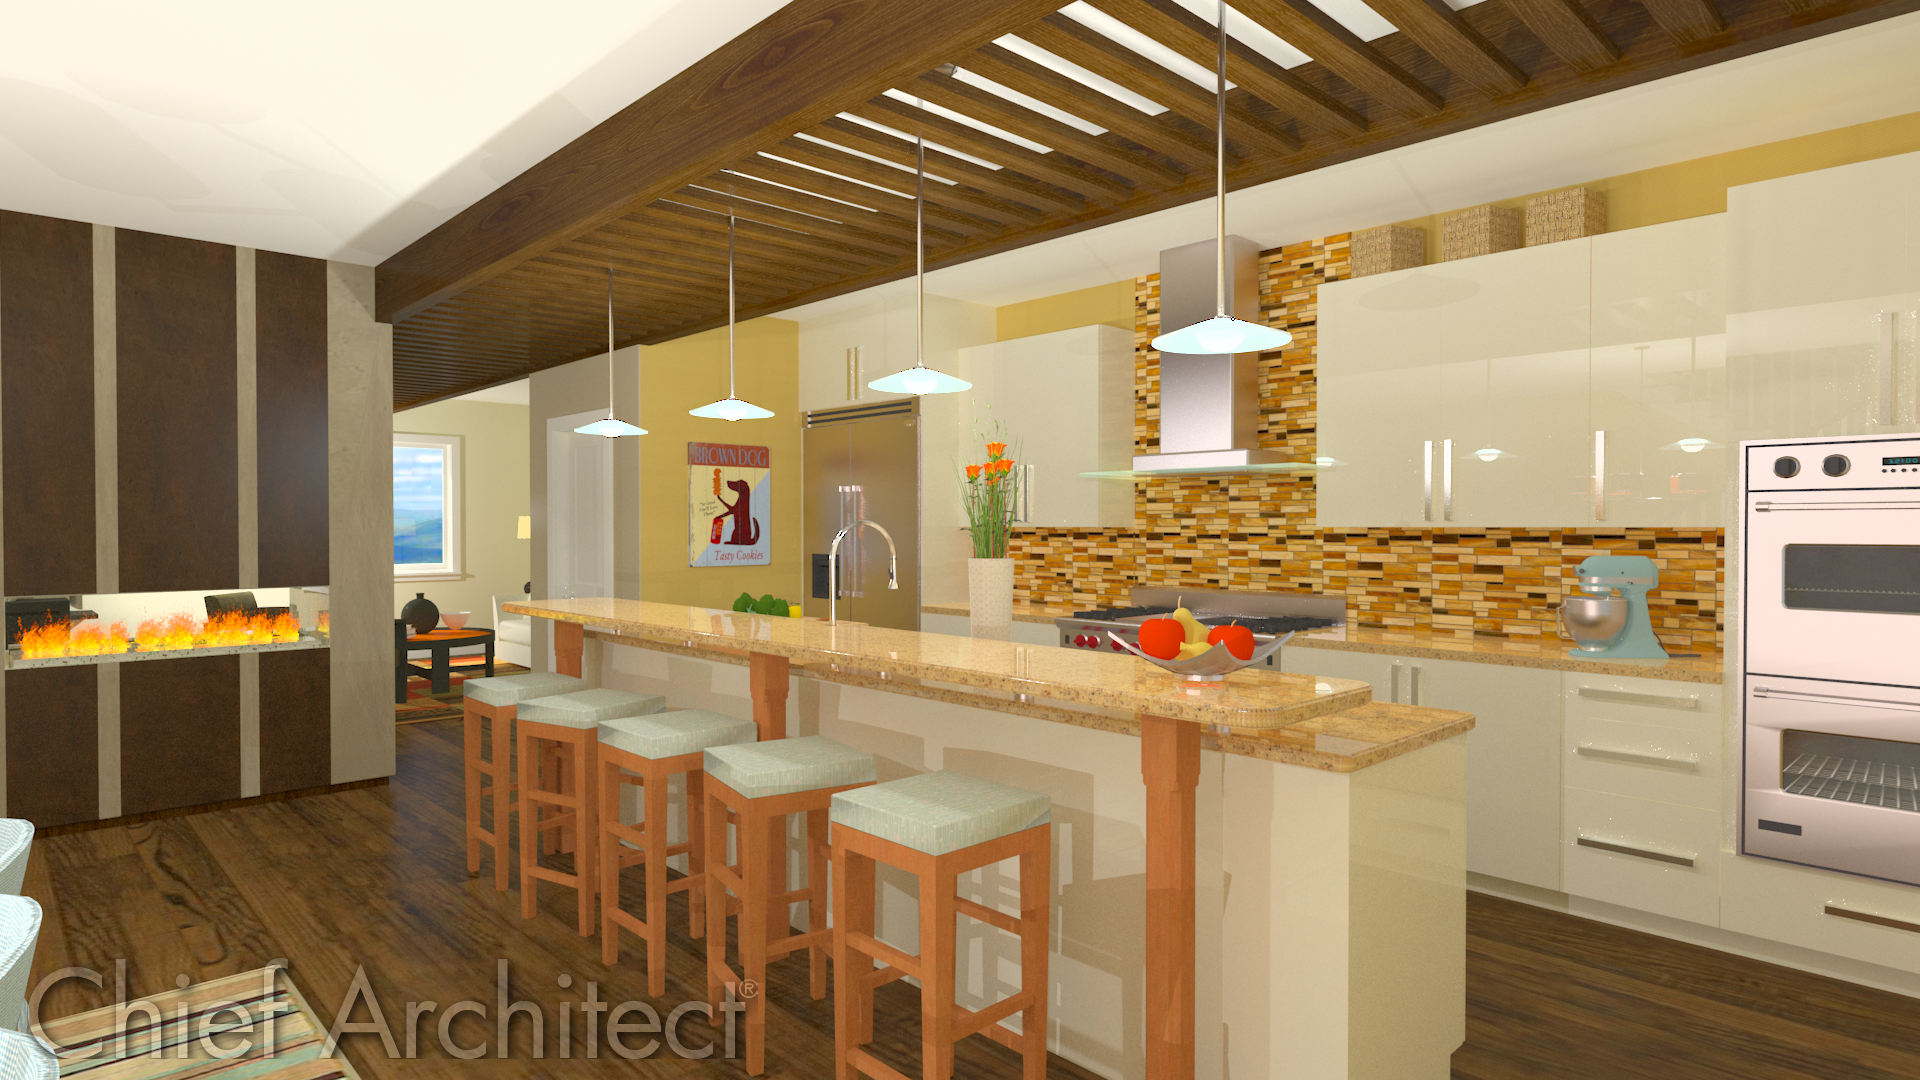 cottage beach kitchen - ray trace done with chief architect